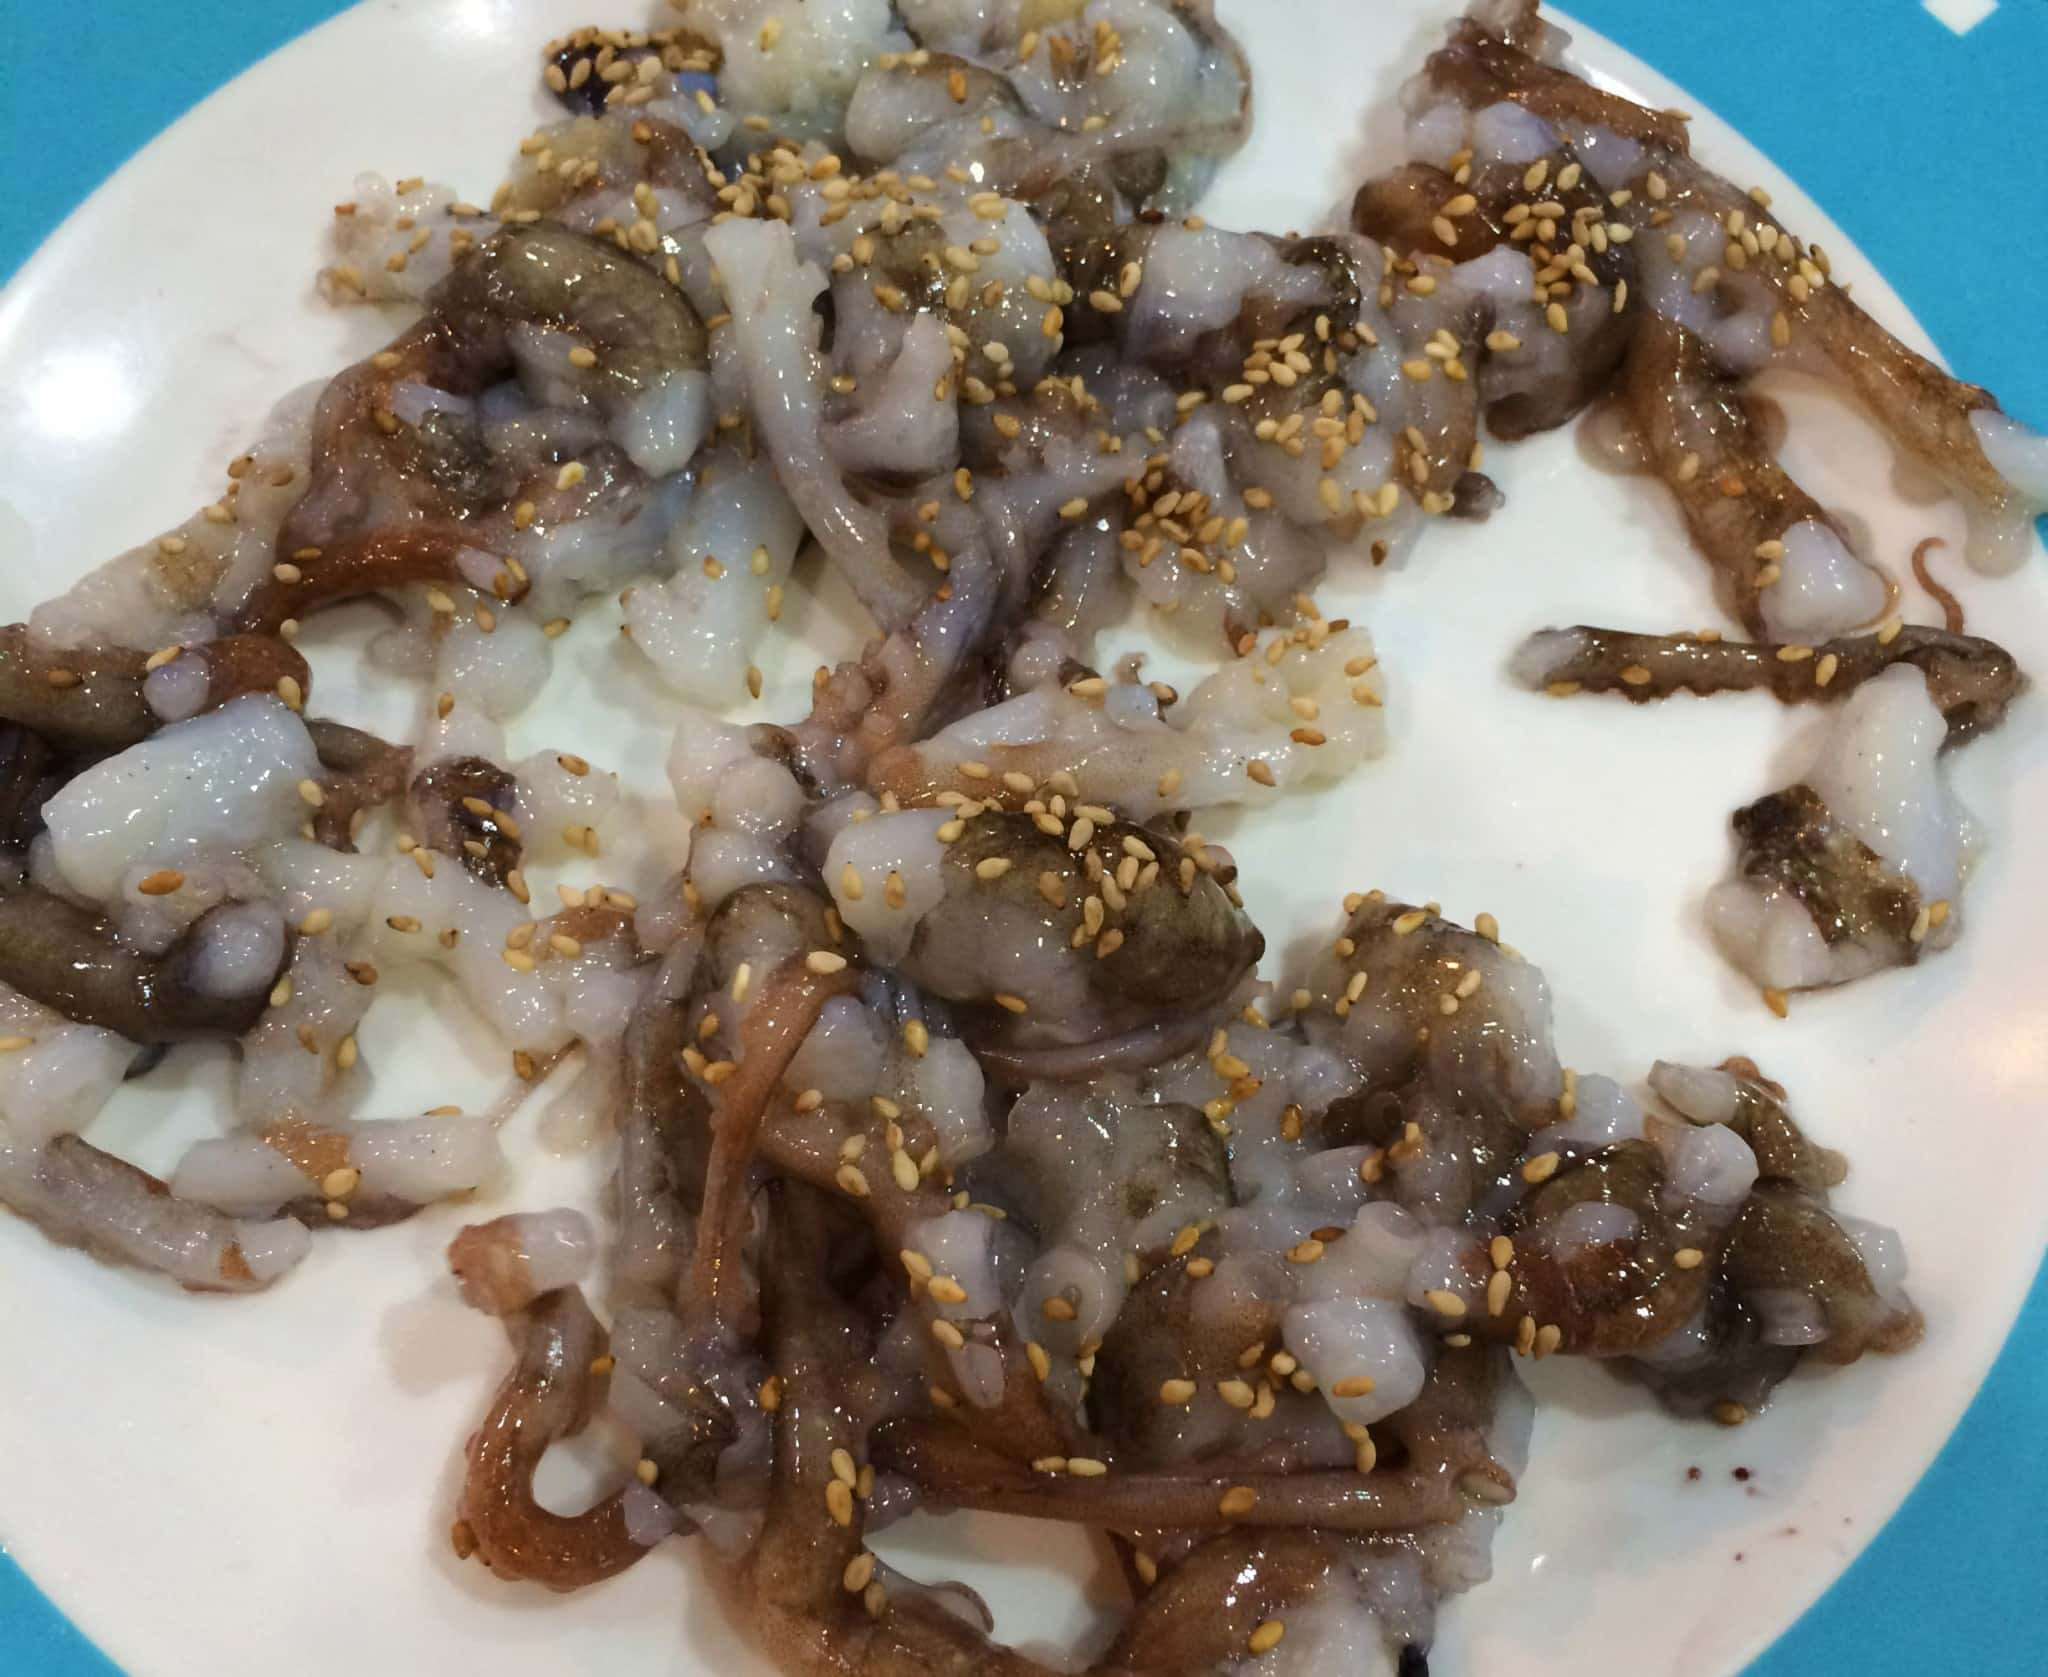 Eating Sannakji In Seoul A Live Octopus